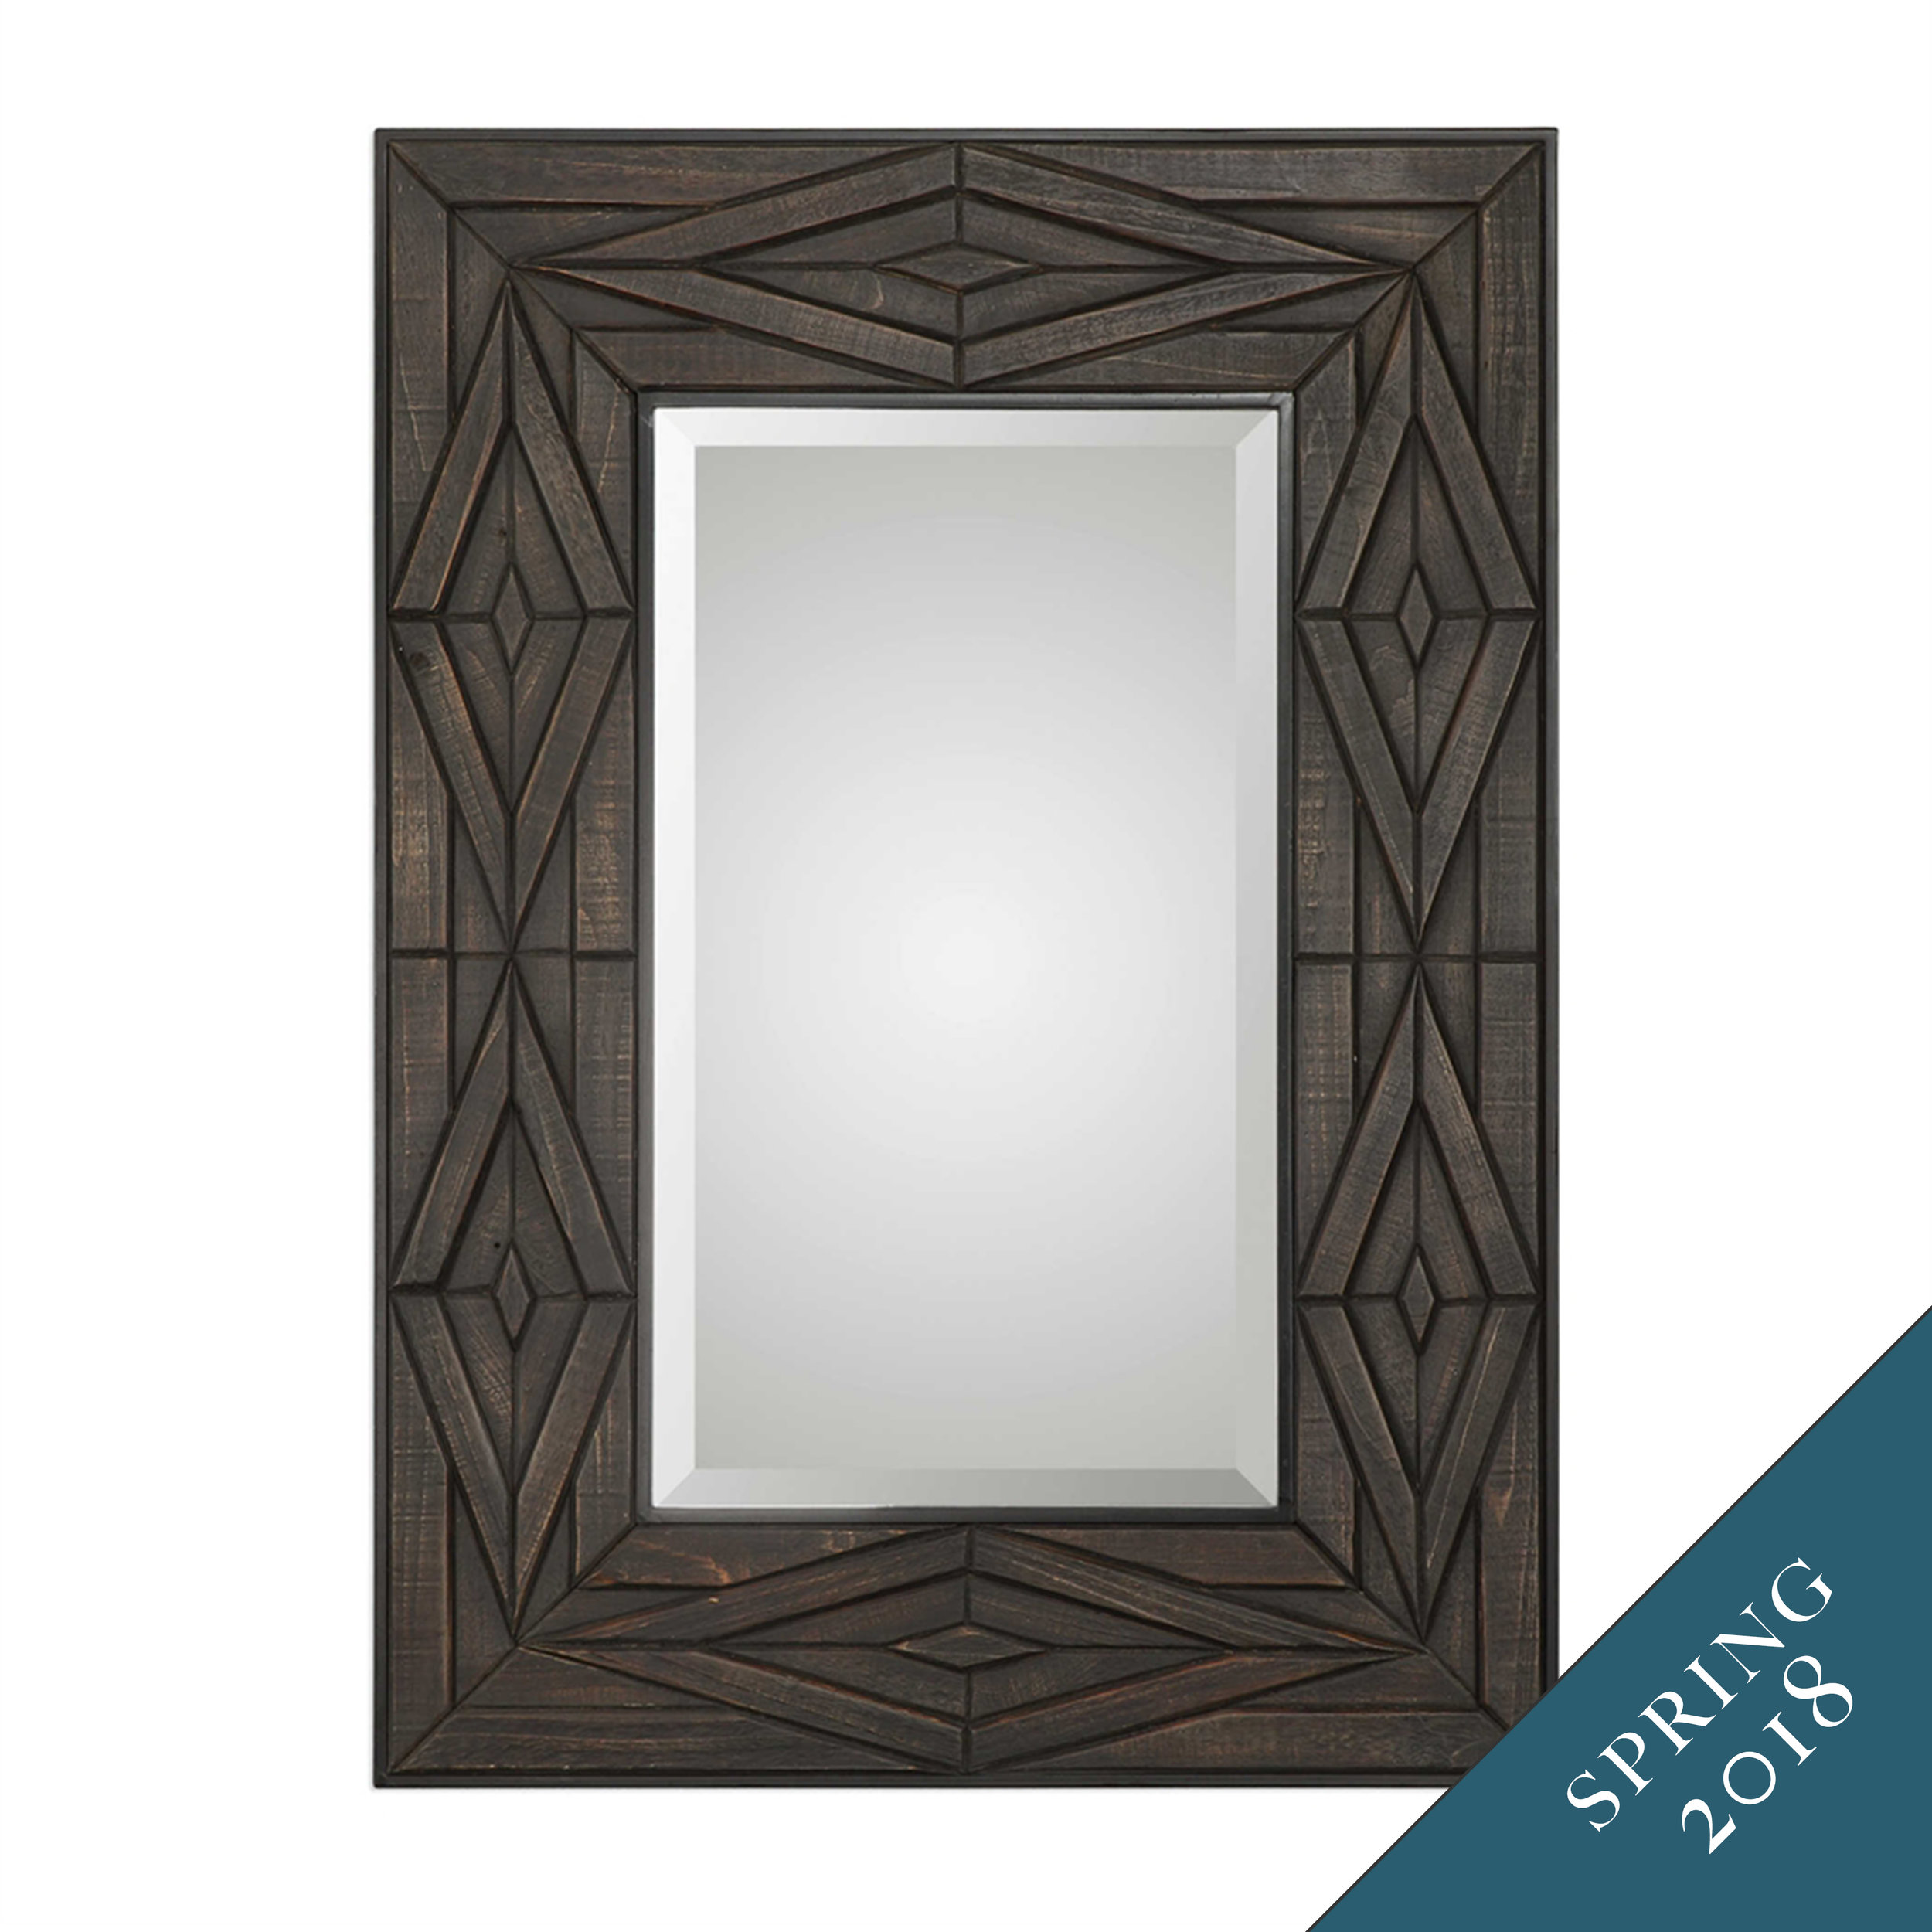 Our Escher mirror is framed in hand-rubbed solid wood with metal accents.